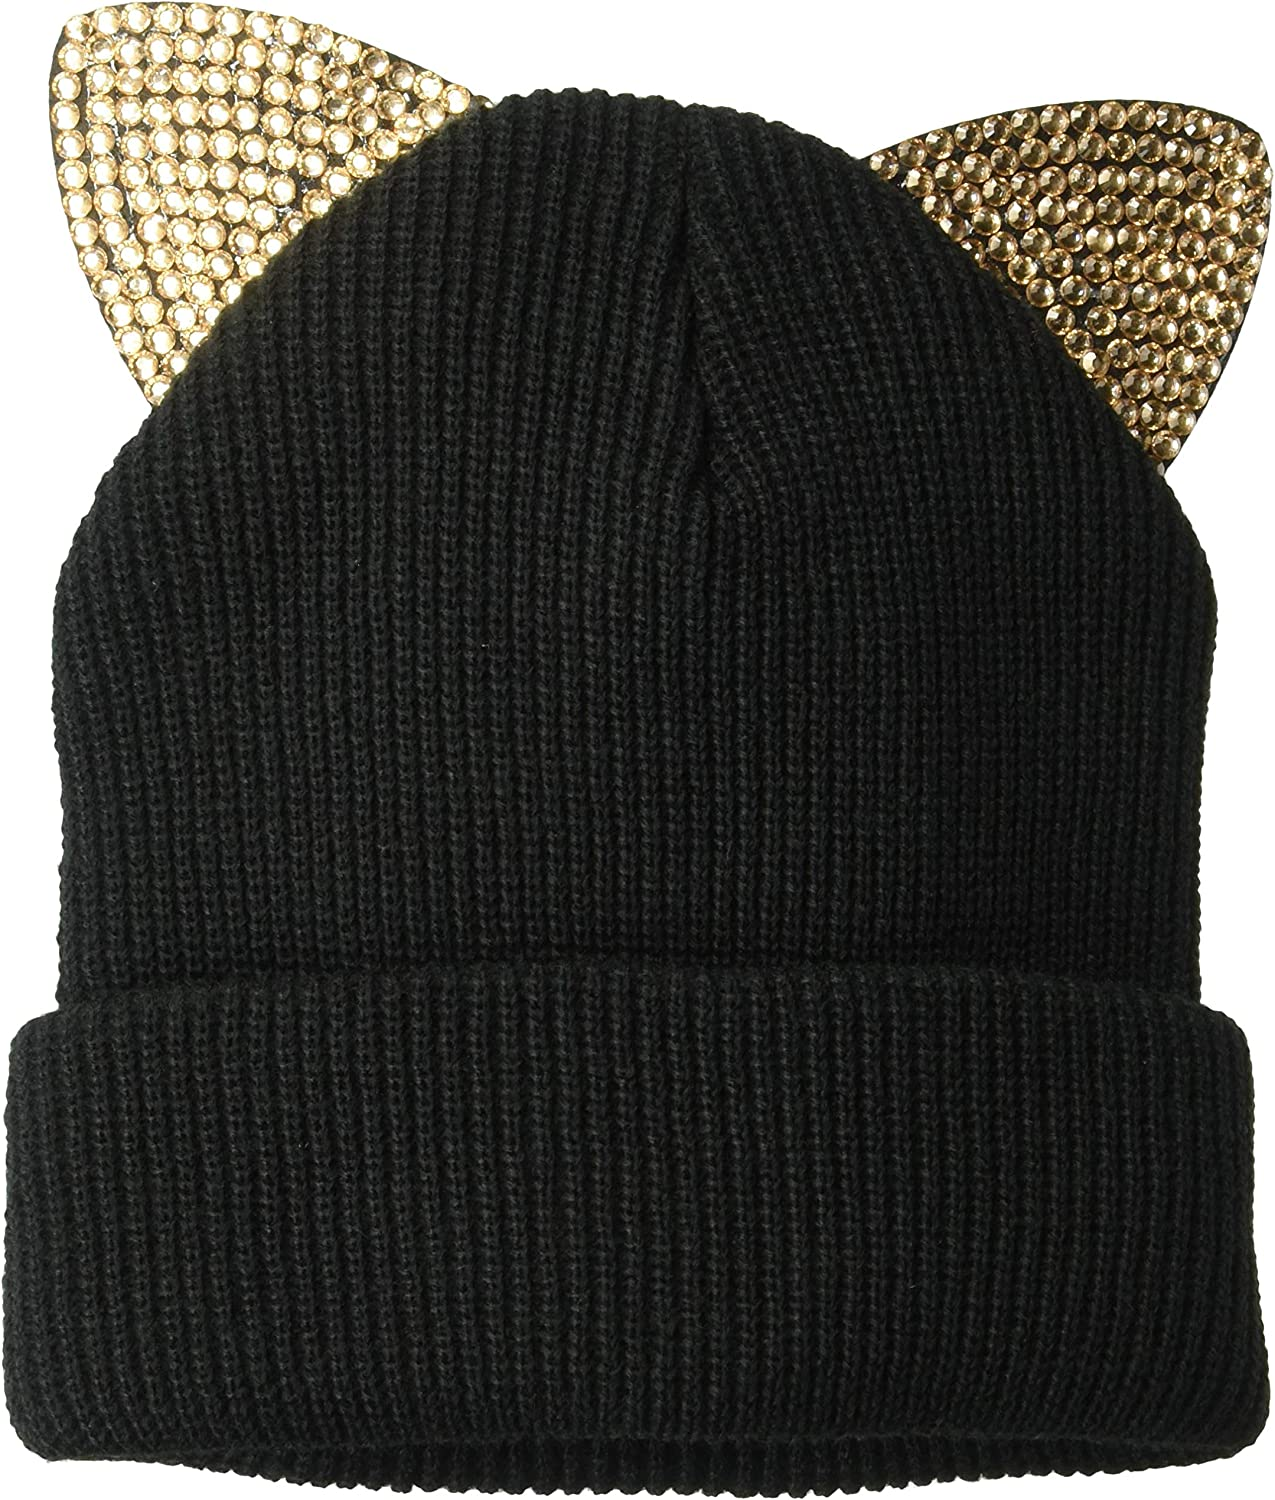 D&Y Women's David & Young's Knitted cat Ear Beanie with Bling, Black, one Size